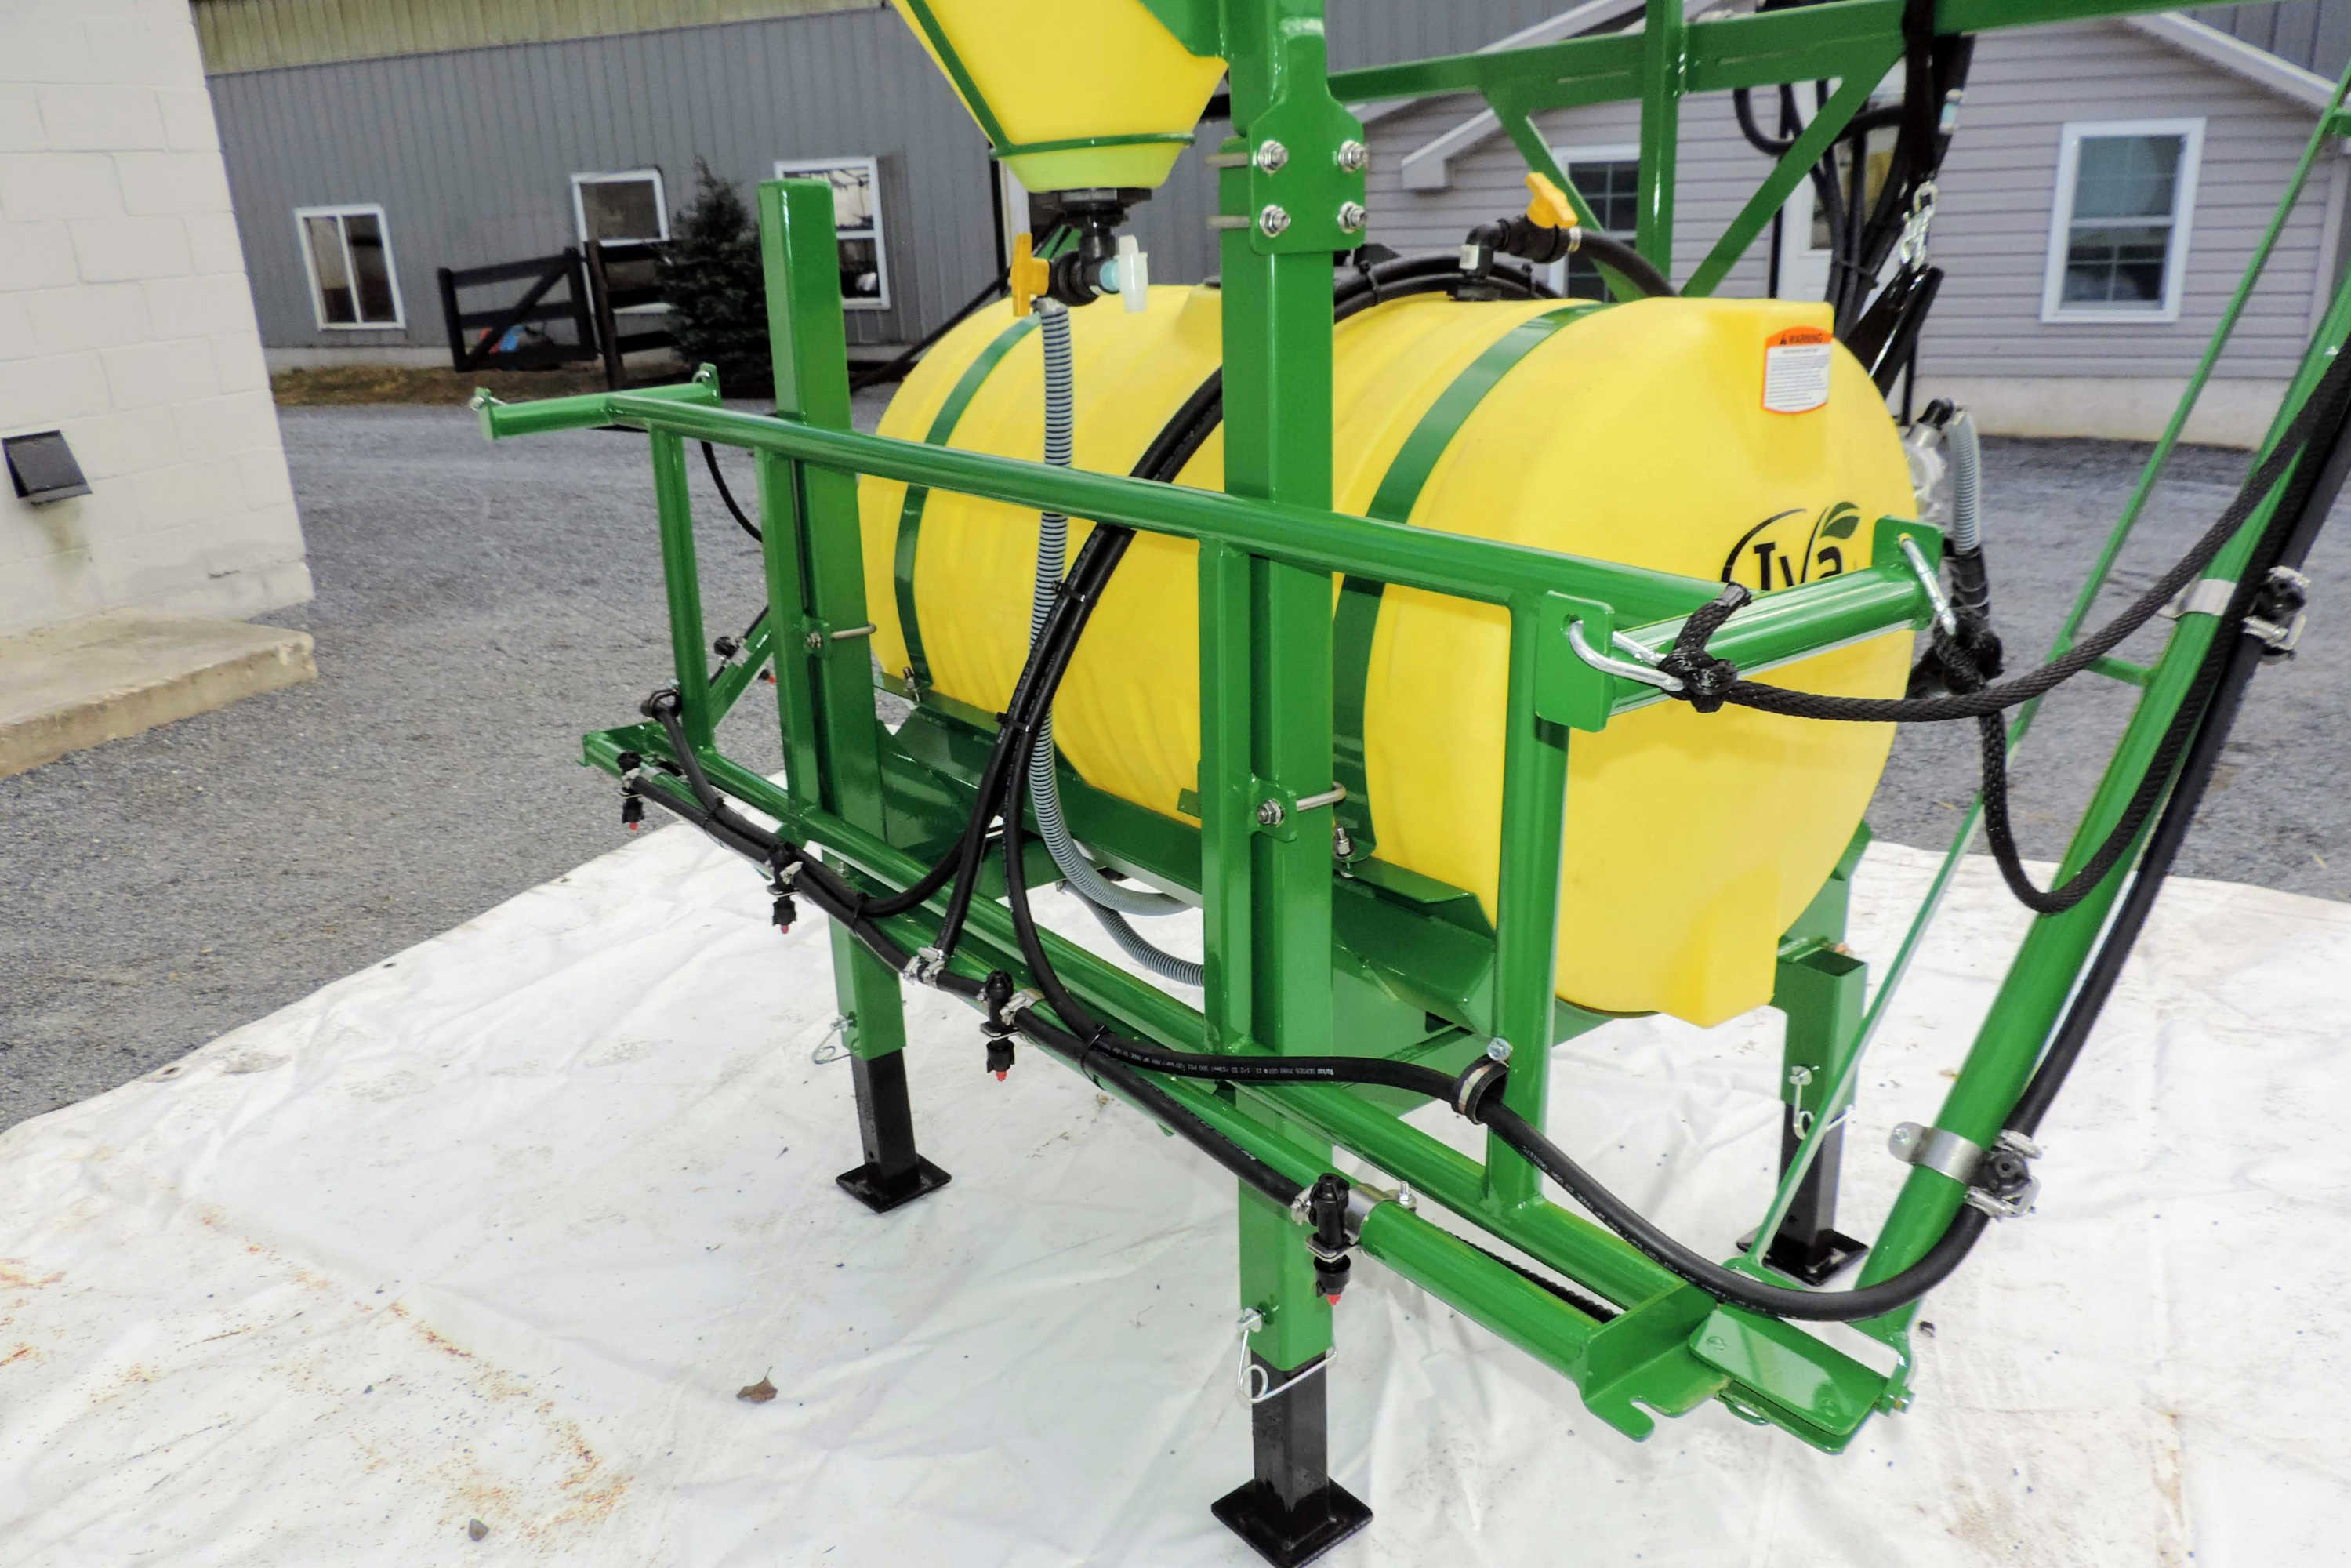 150 gallon 3-point Mounted Sprayer with 30' manual-fold booms